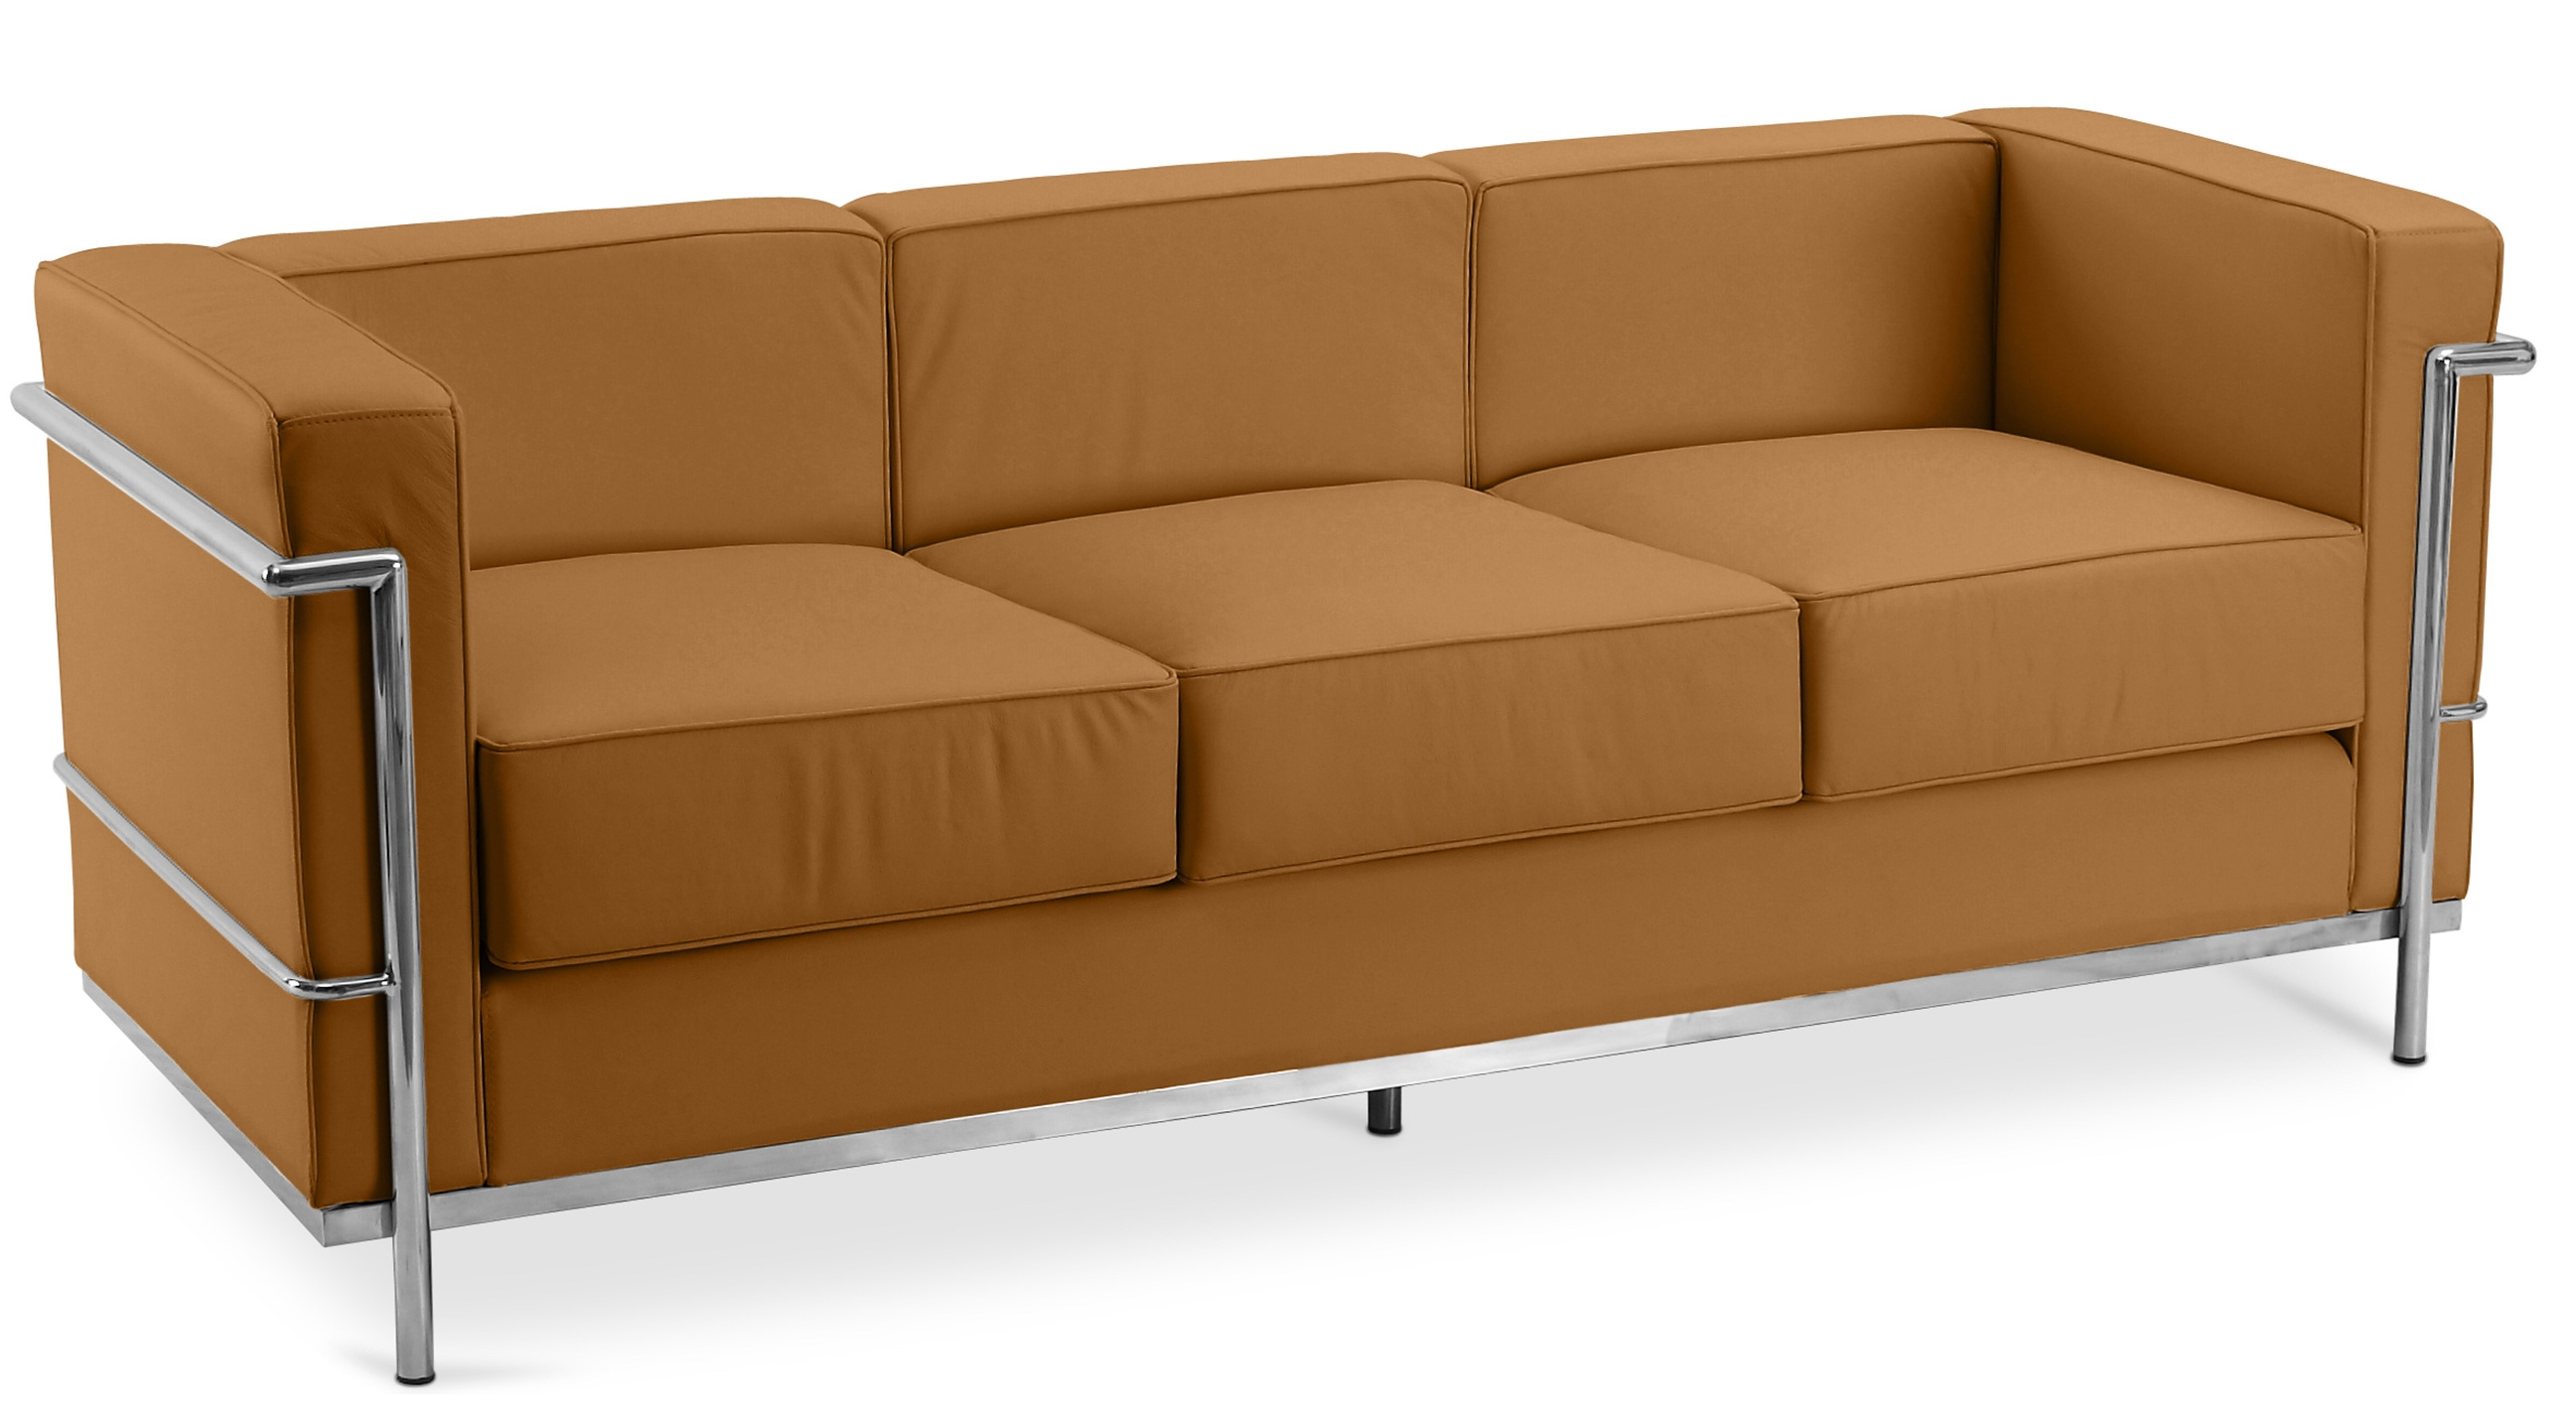 Canap cuir camel 3 places inspir lc2 - Canape cuir le corbusier ...